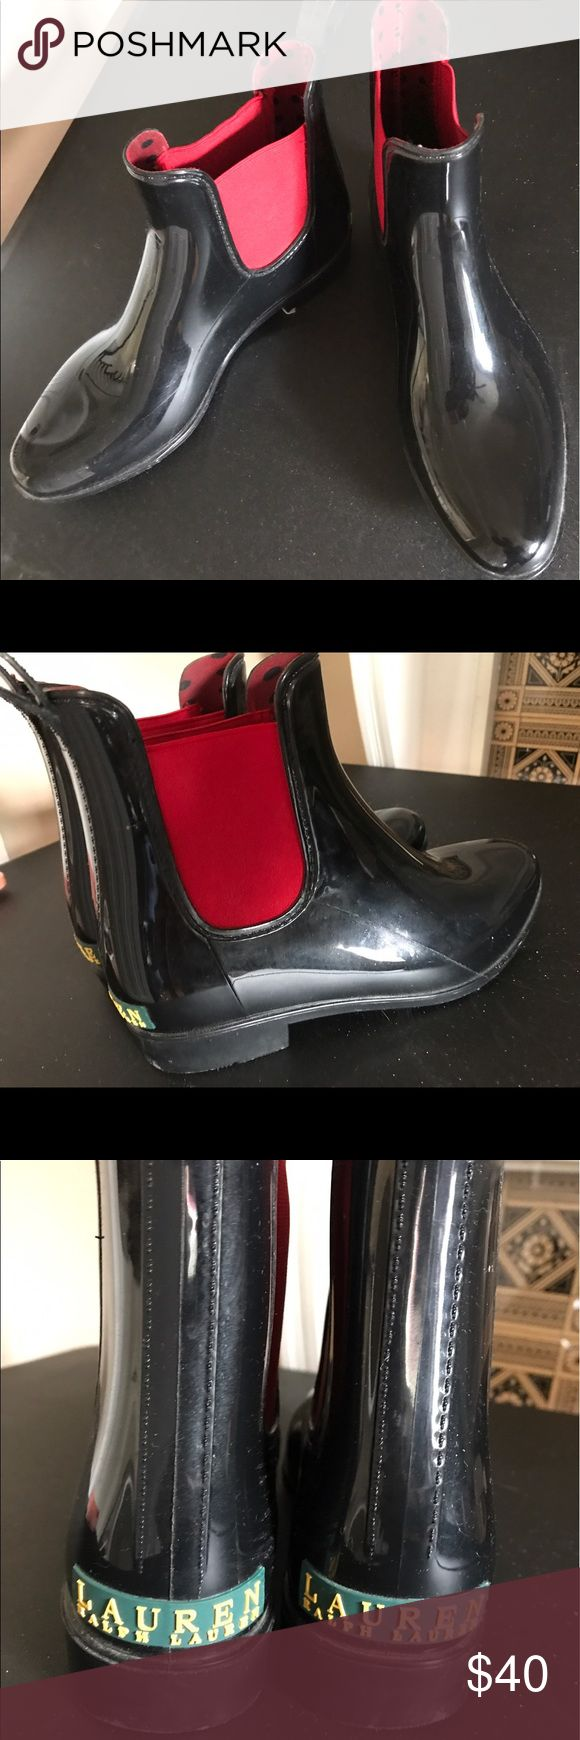 Ralph Lauren Ankle Rainboot Super comfortable. Stays dry in wet climates. Only been worn a few times. Super easy to slide on and off so Can be worn with a super cute outfit or become your fave out the door throw on for running ok quick, grabbing mail etc. genuine Ralph Lauren originals. Matches with everything. Polka dot lining, green and red accents. So cute❤️ Ralph Lauren Shoes Ankle Boots & Booties